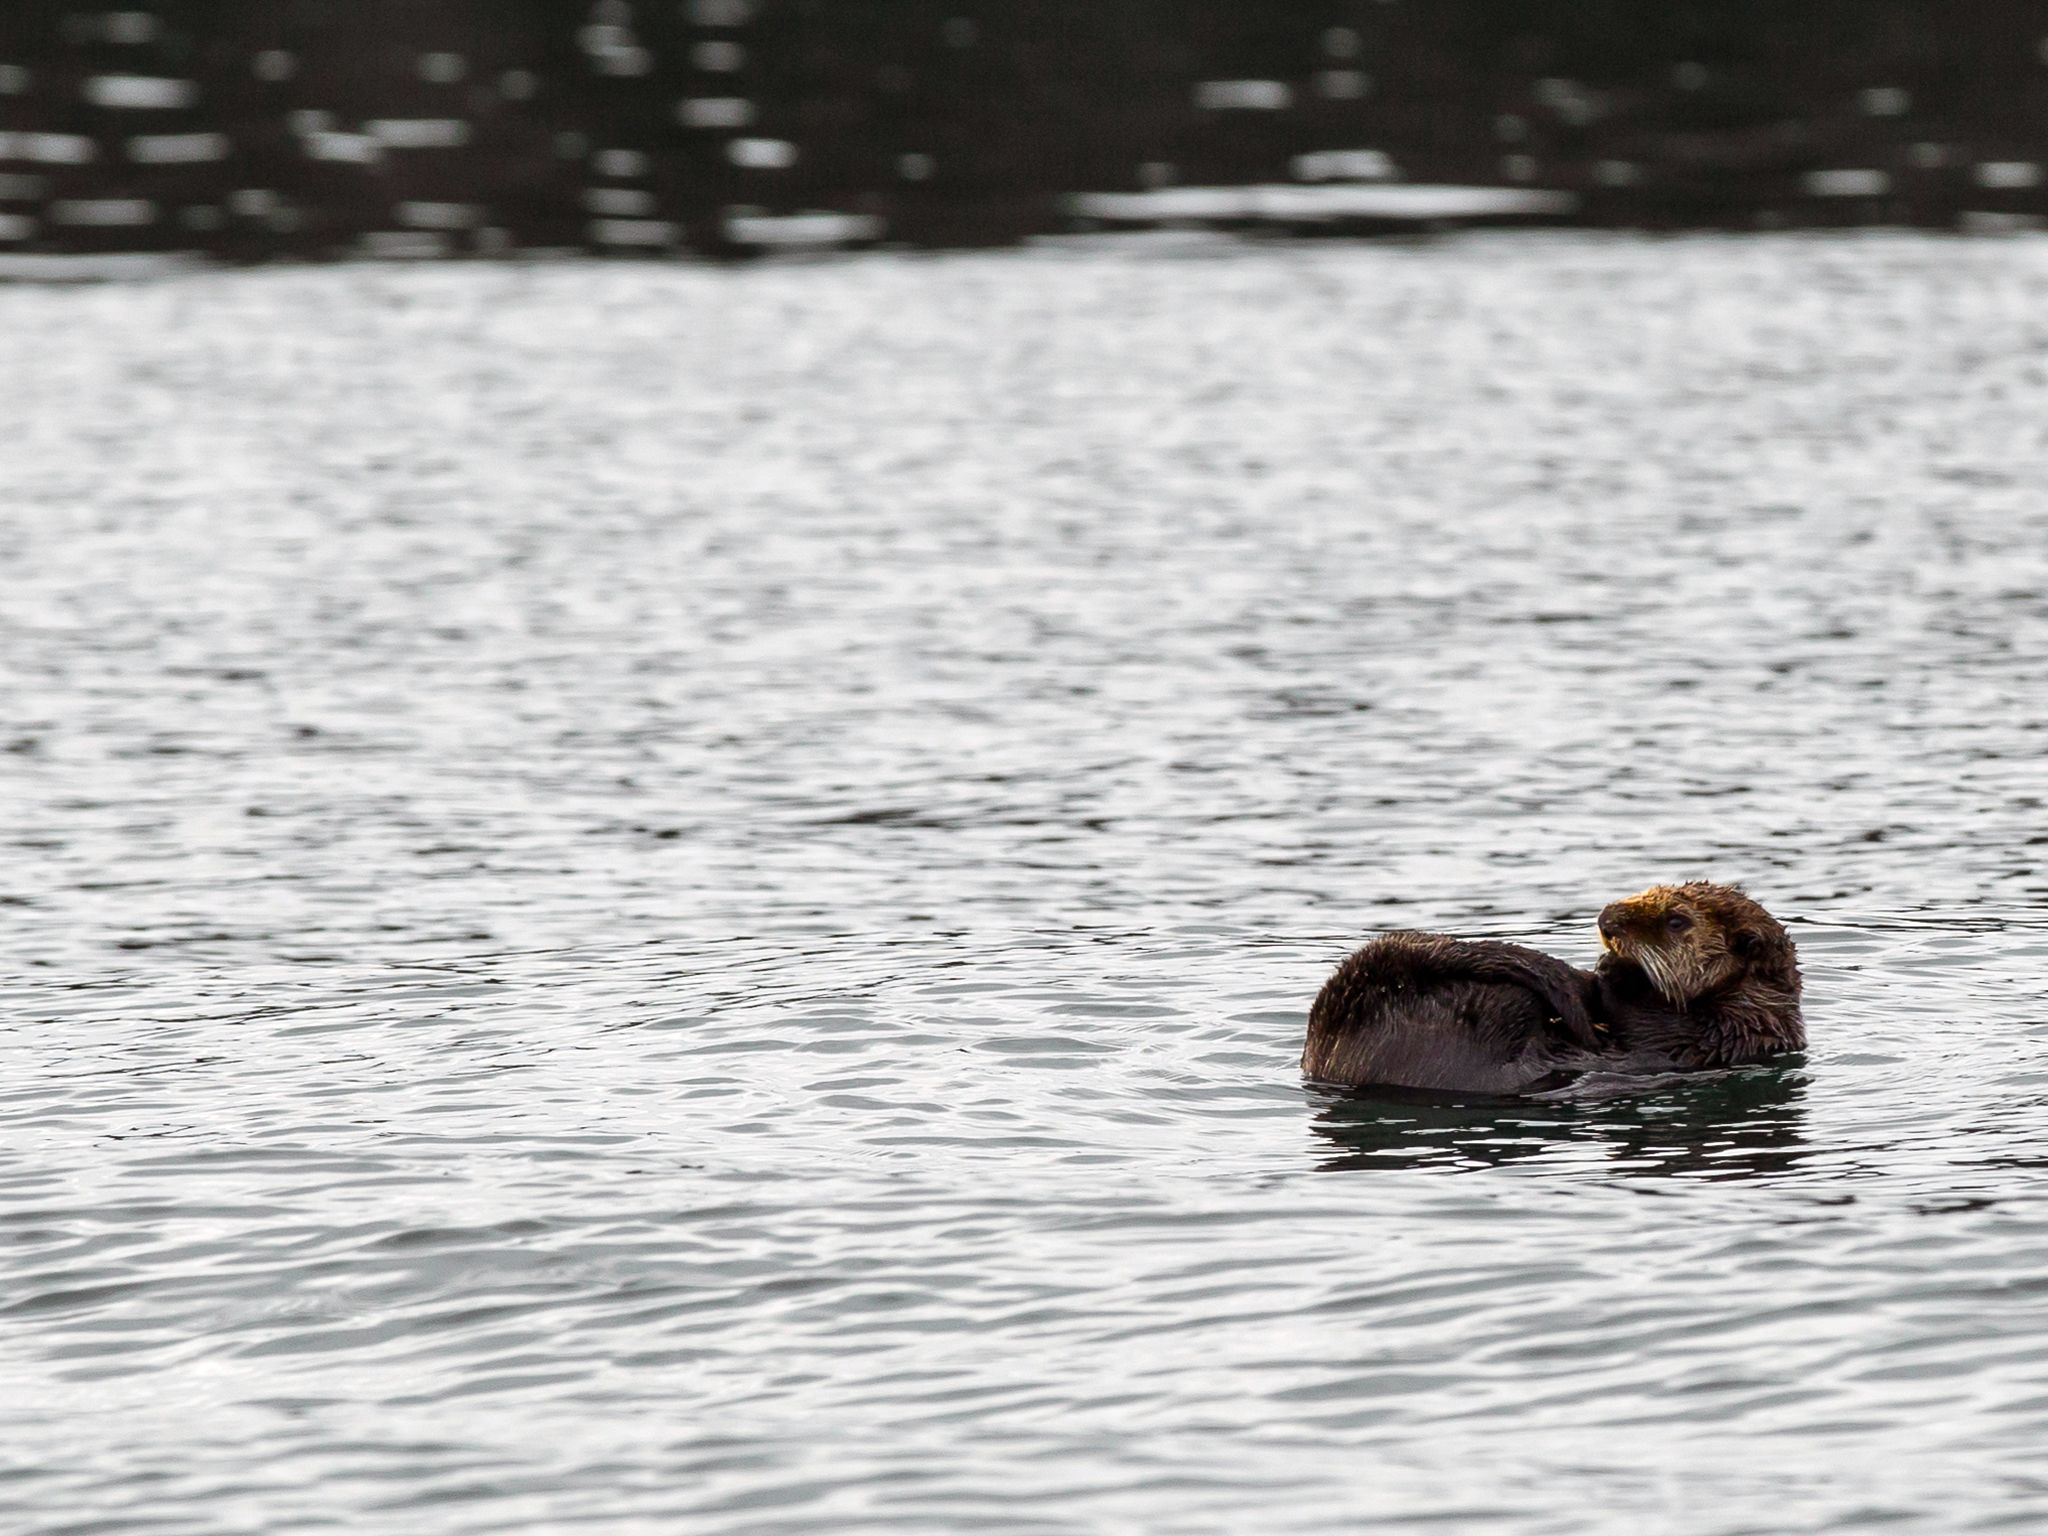 An otter swims on its back near the docks in Port Protection, AK. This image is from Port Protect... [Фото дня - Ноябрь 2015]